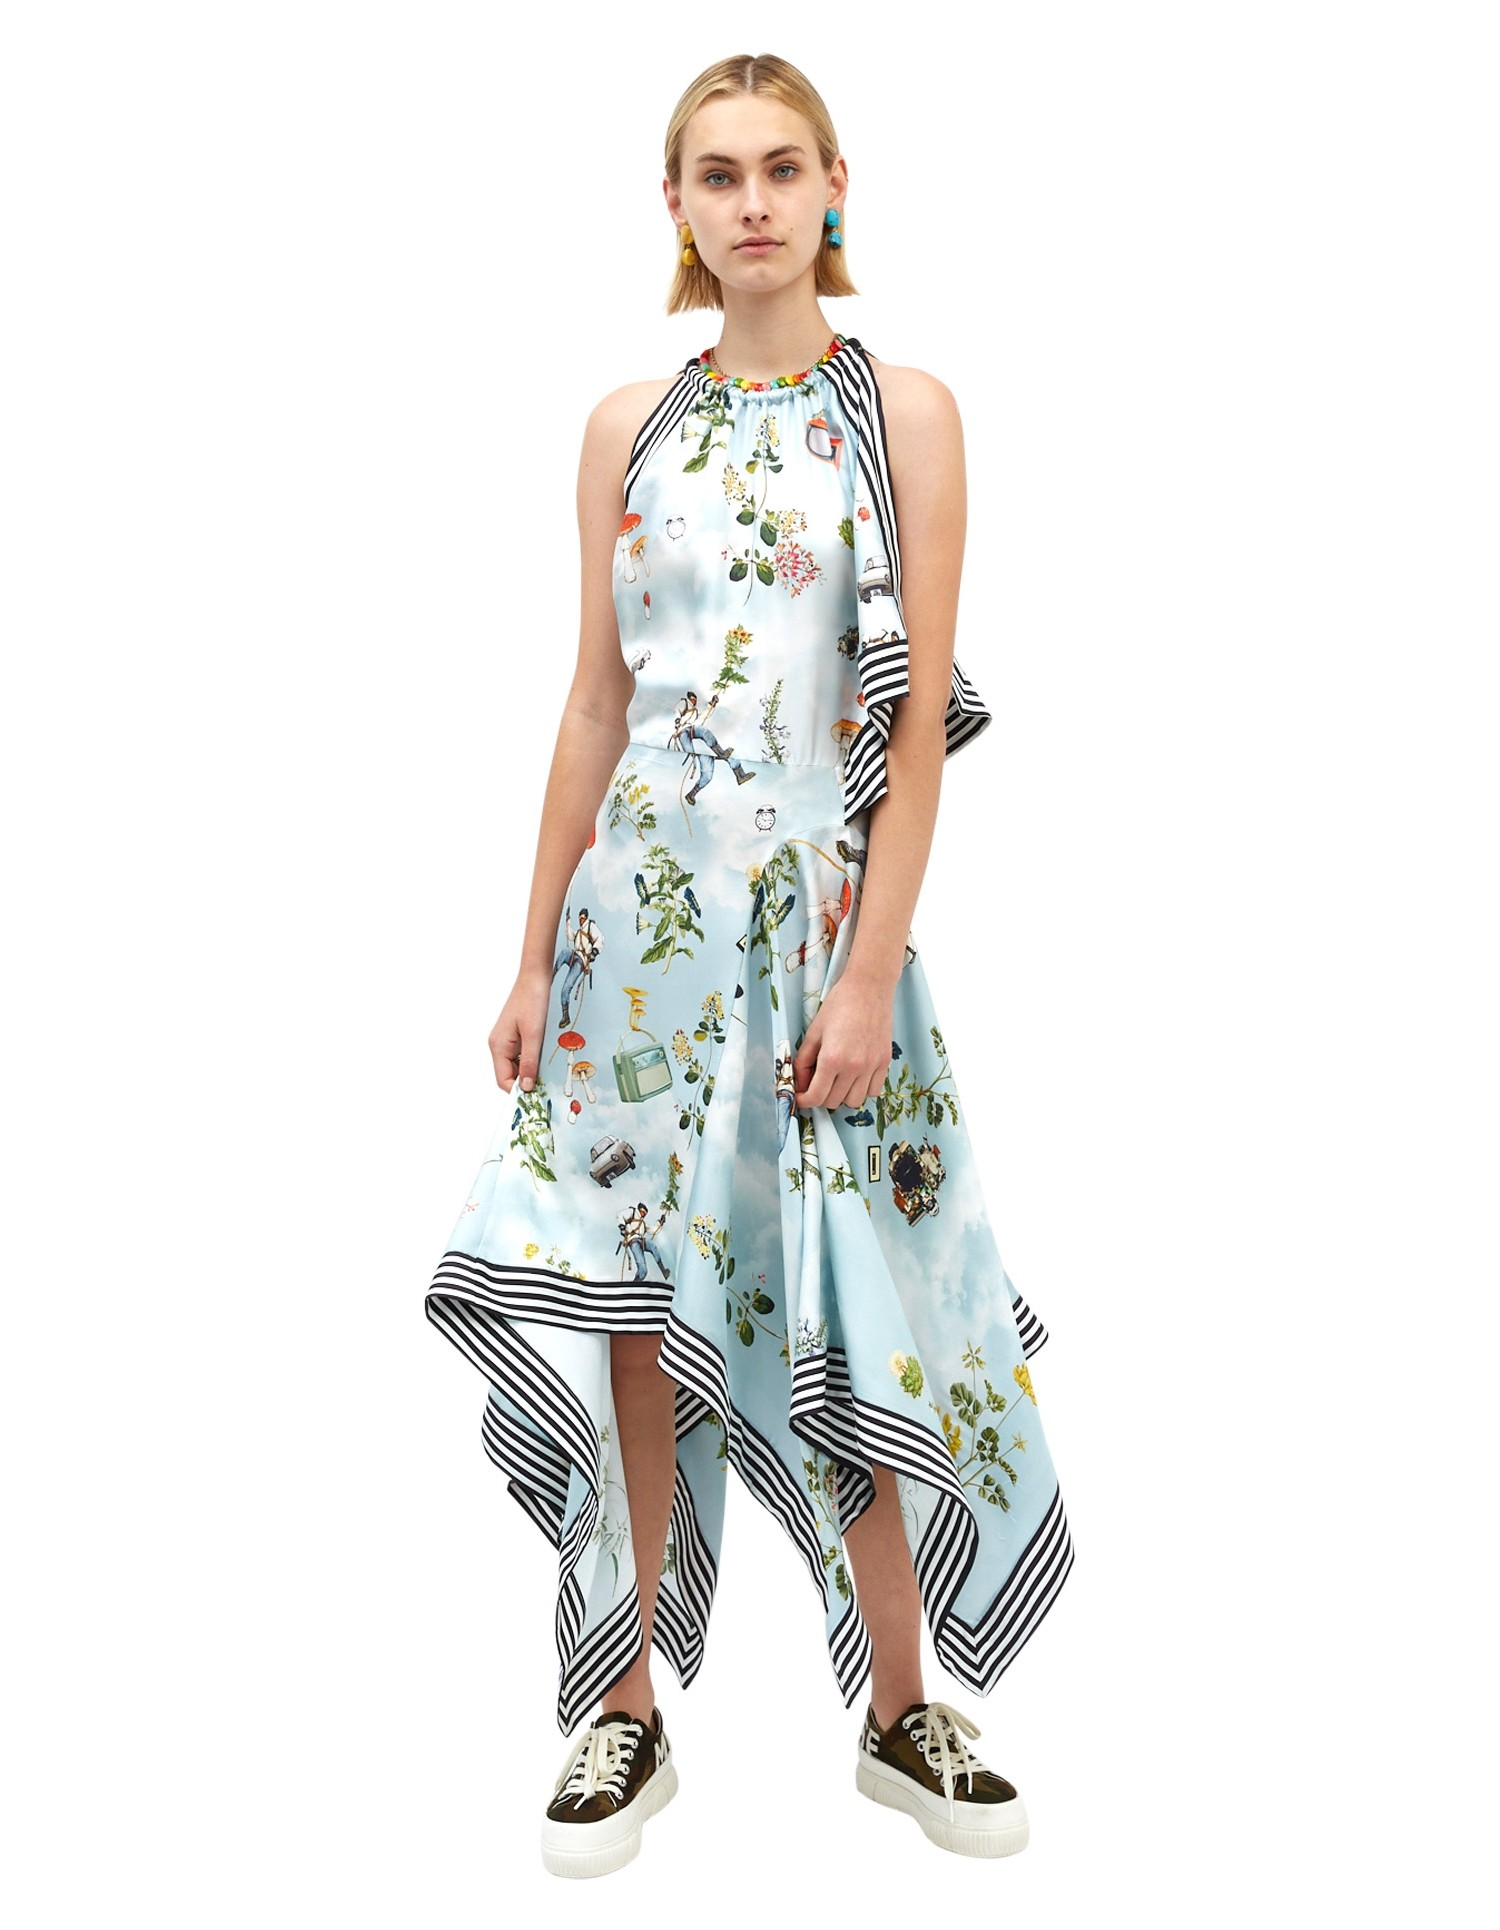 MONSE Climbing High Scarf Dress on Model Front View